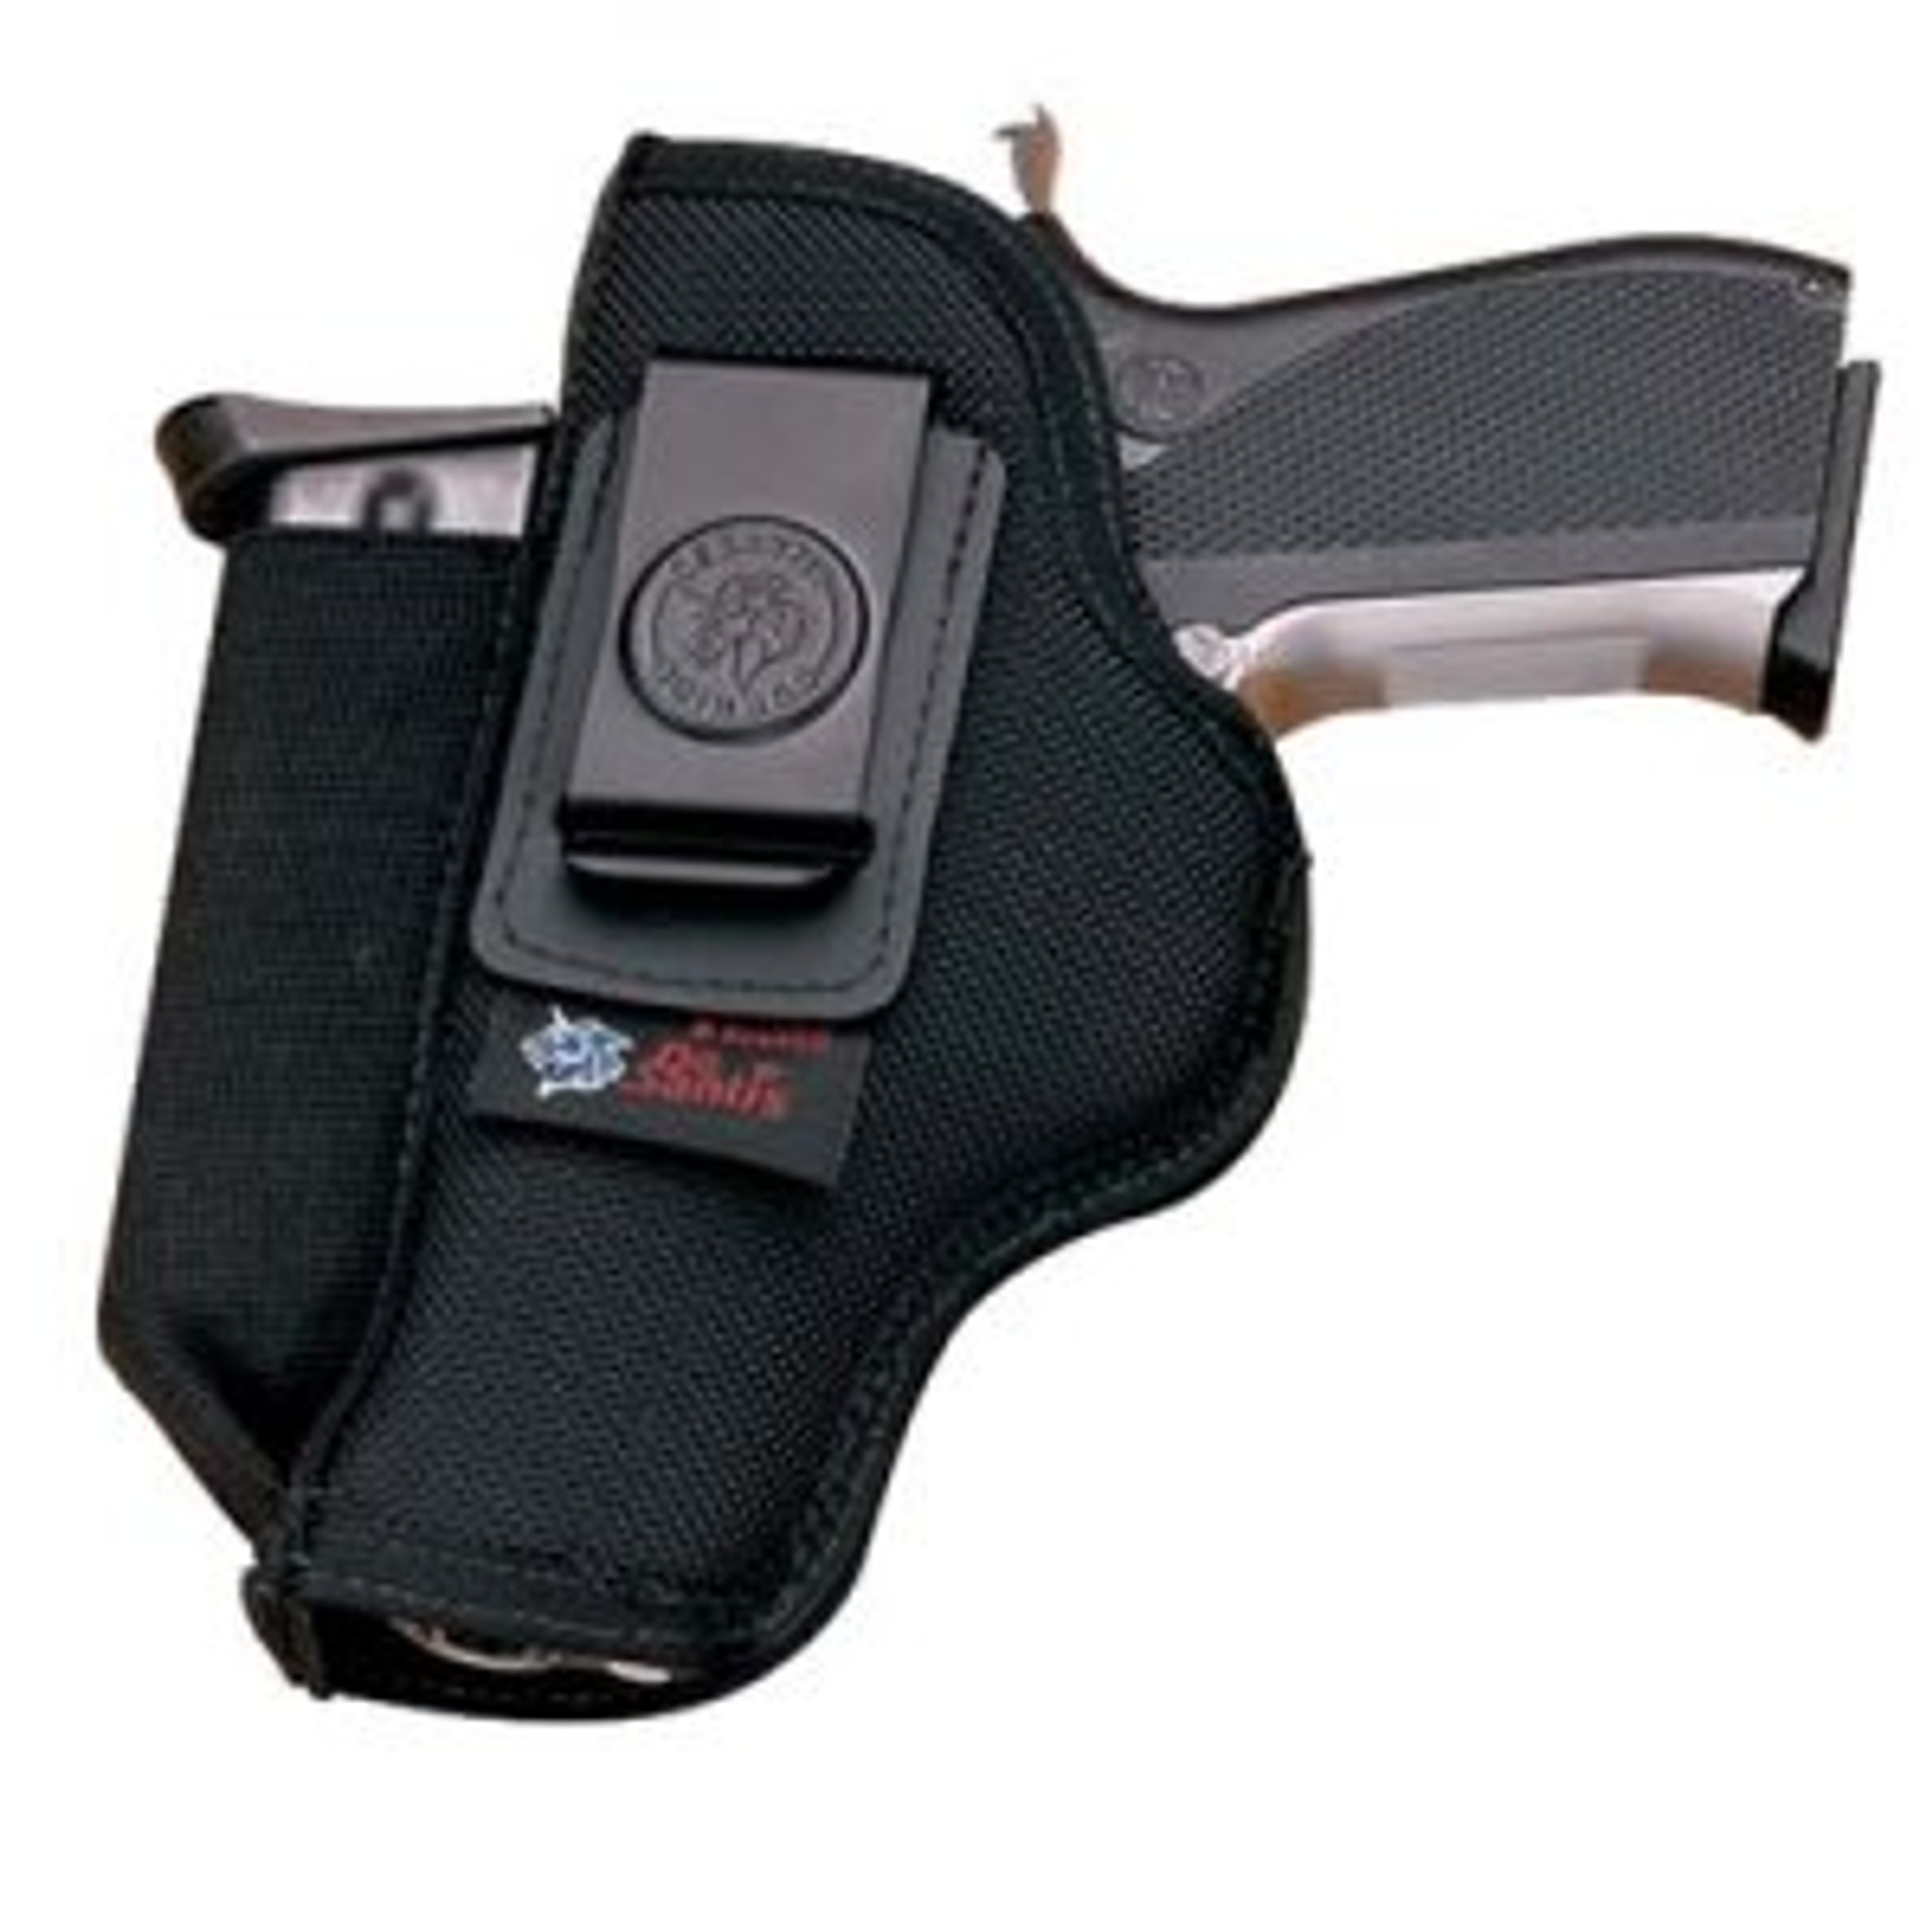 Kingston Car Seat Holster Review